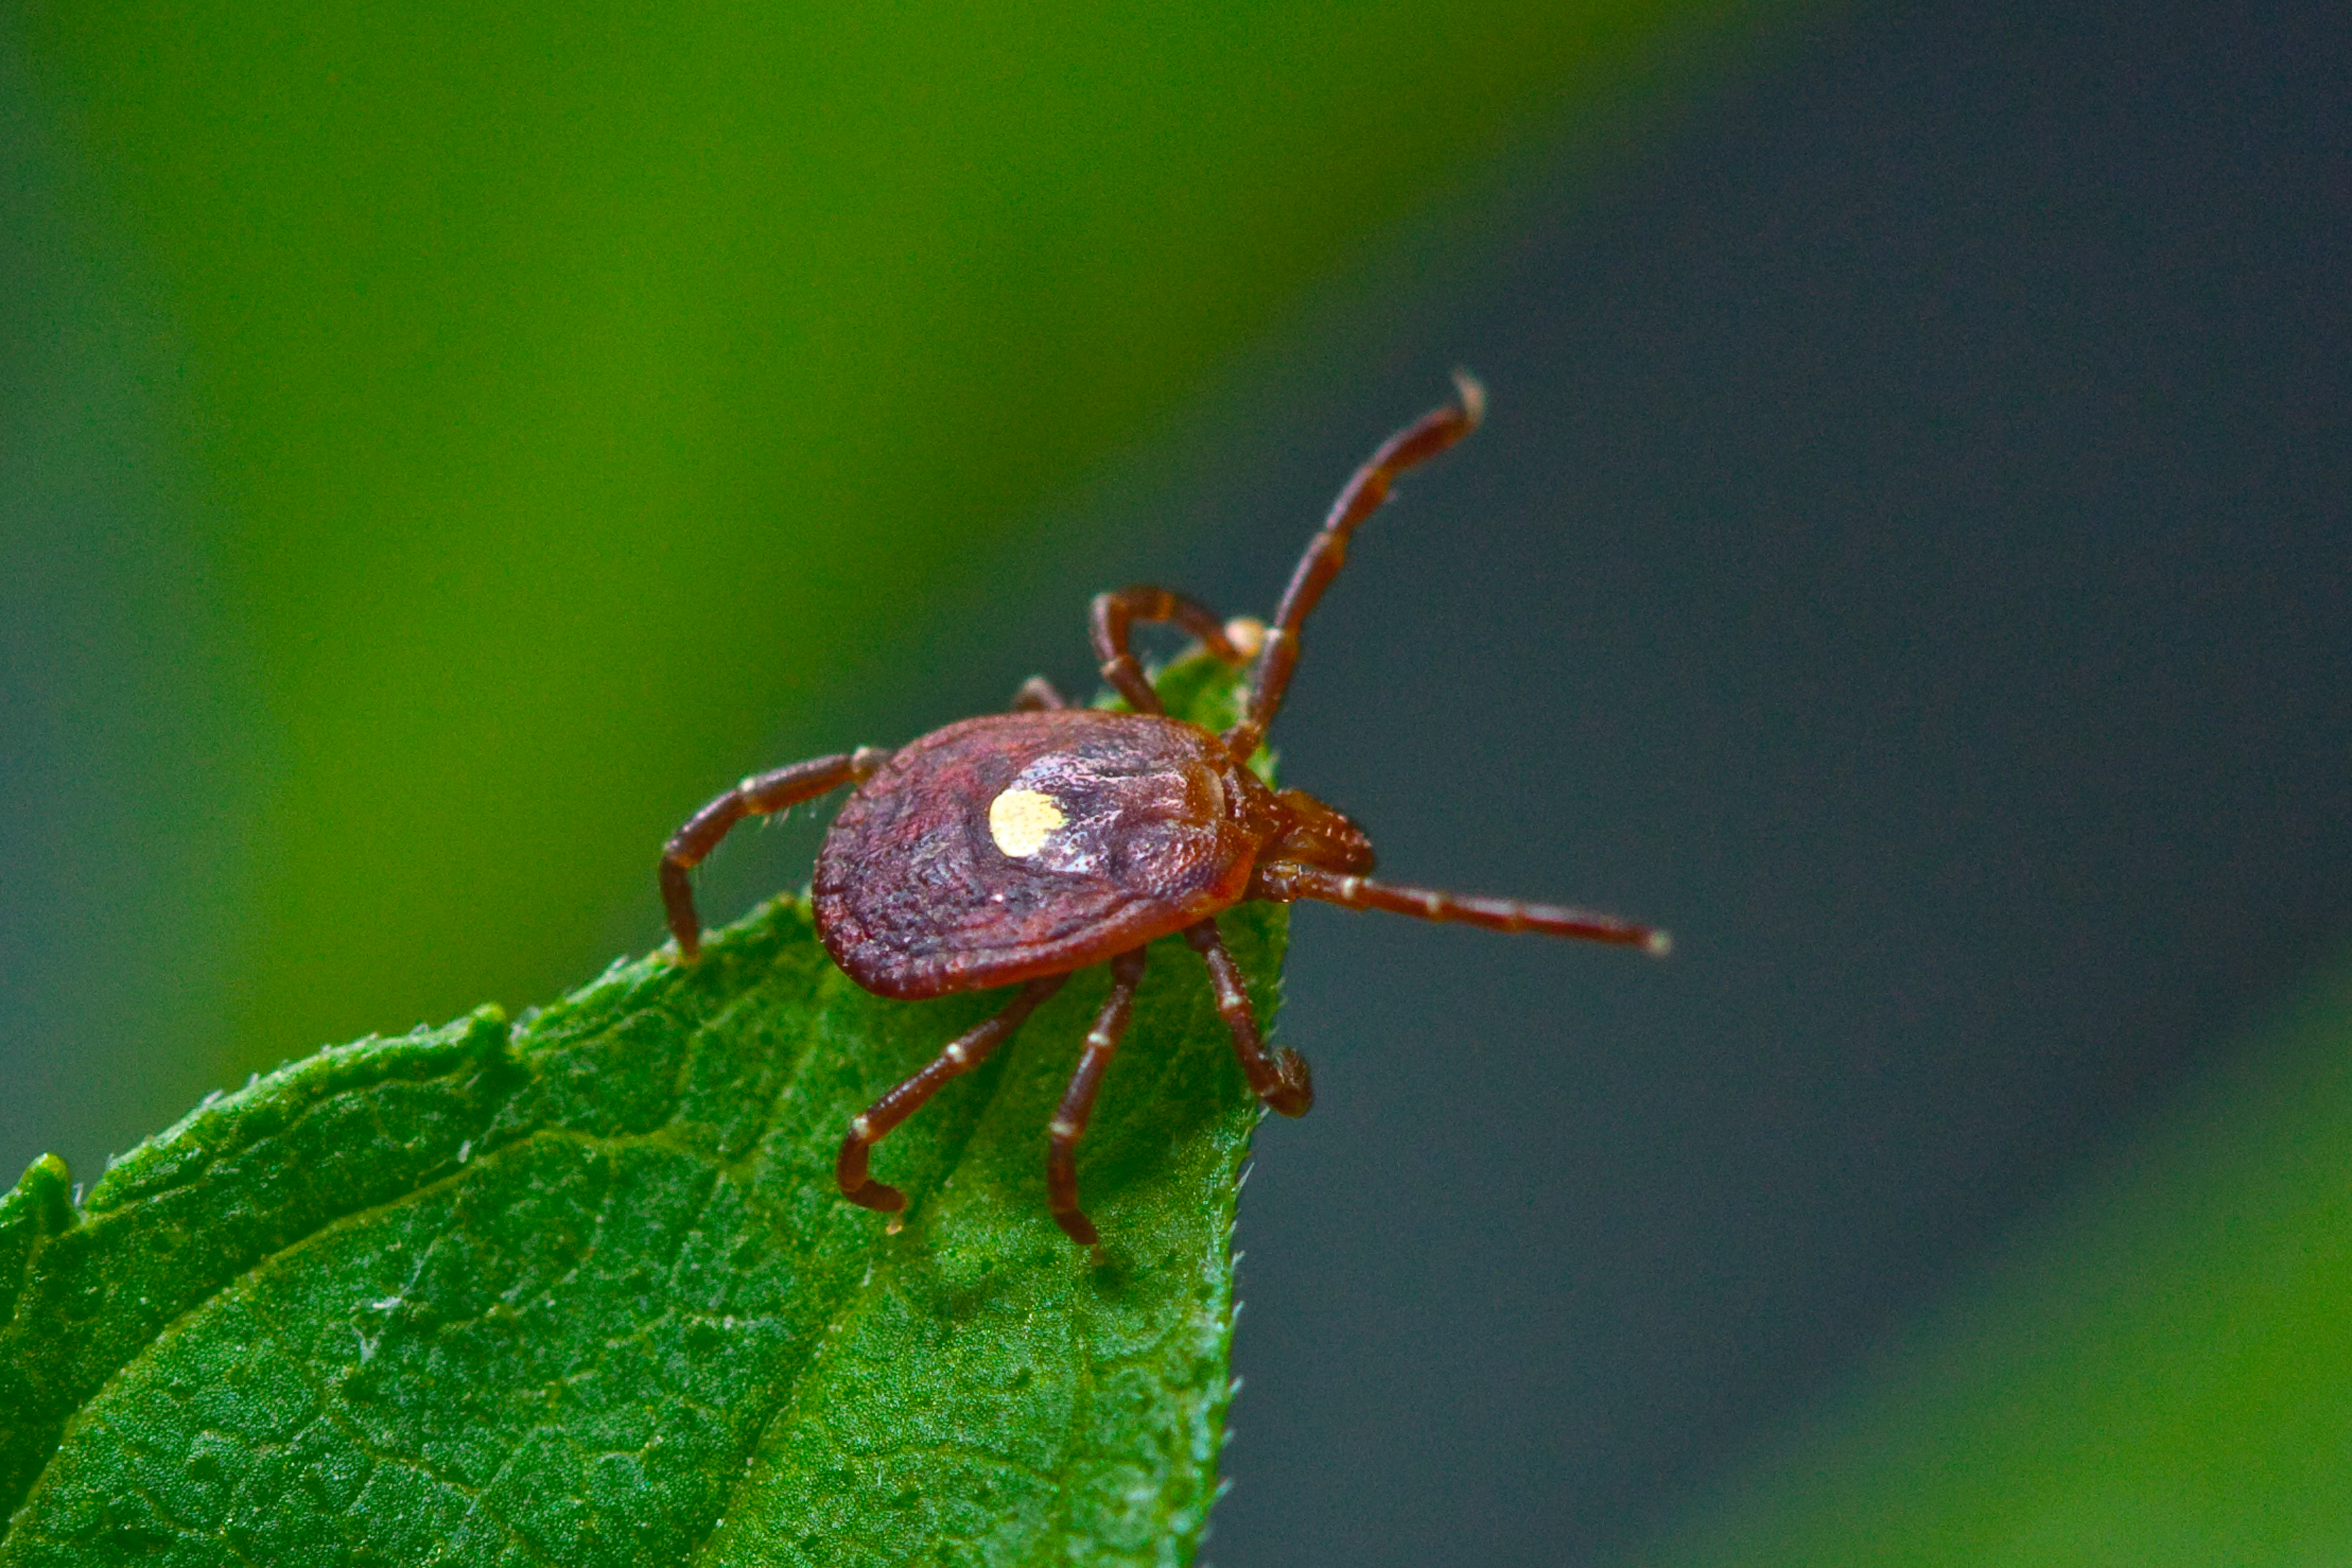 Florida Sees Big Jump In Reported Lyme Disease Cases | WJCT NEWS